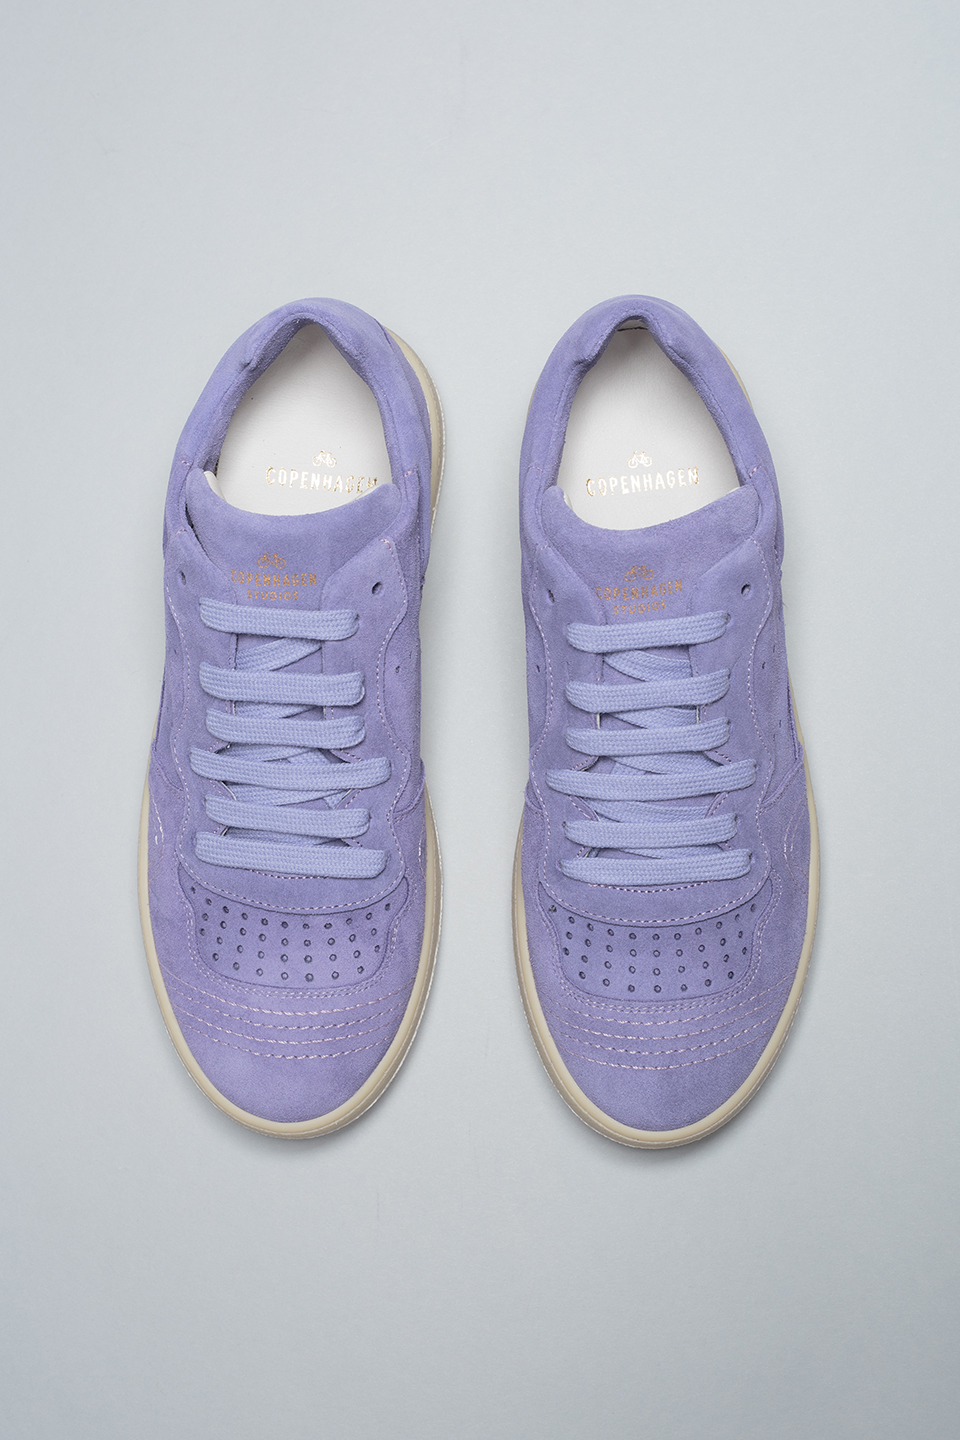 CPH463 crosta soft lilac - alternative 4